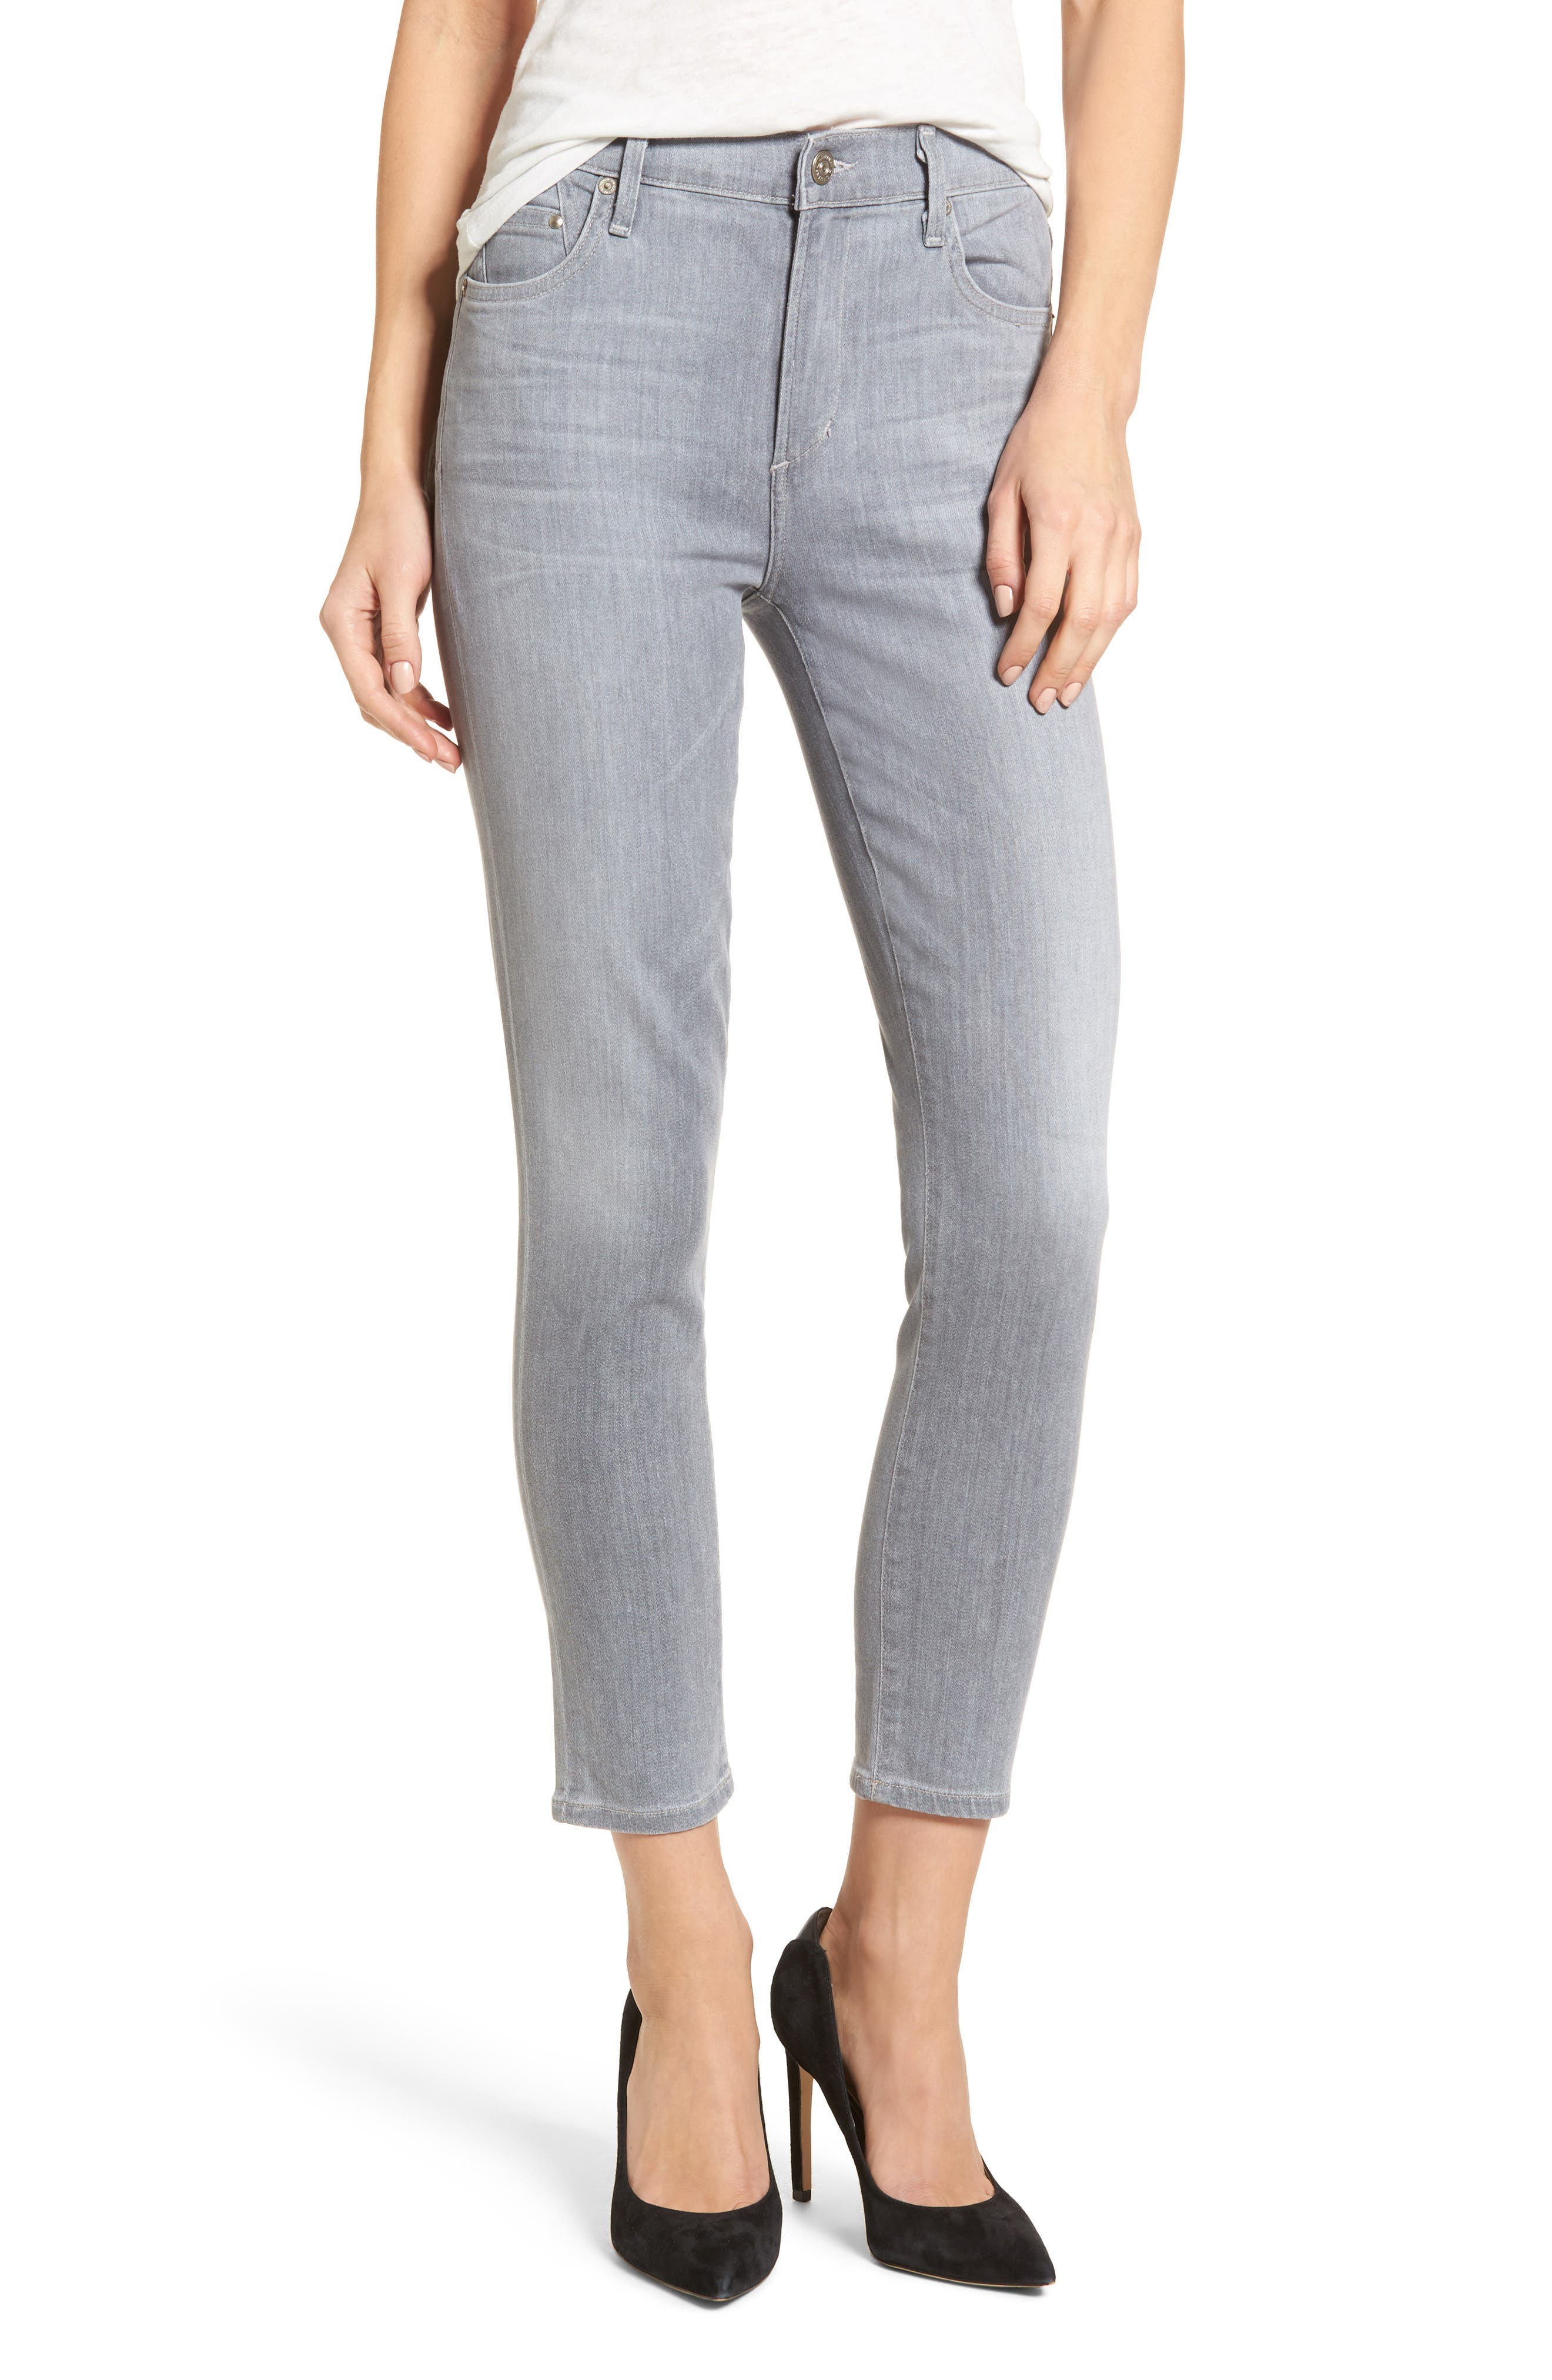 Rocket High Waist Crop Skinny Jeans,                         Main,                         color, 056